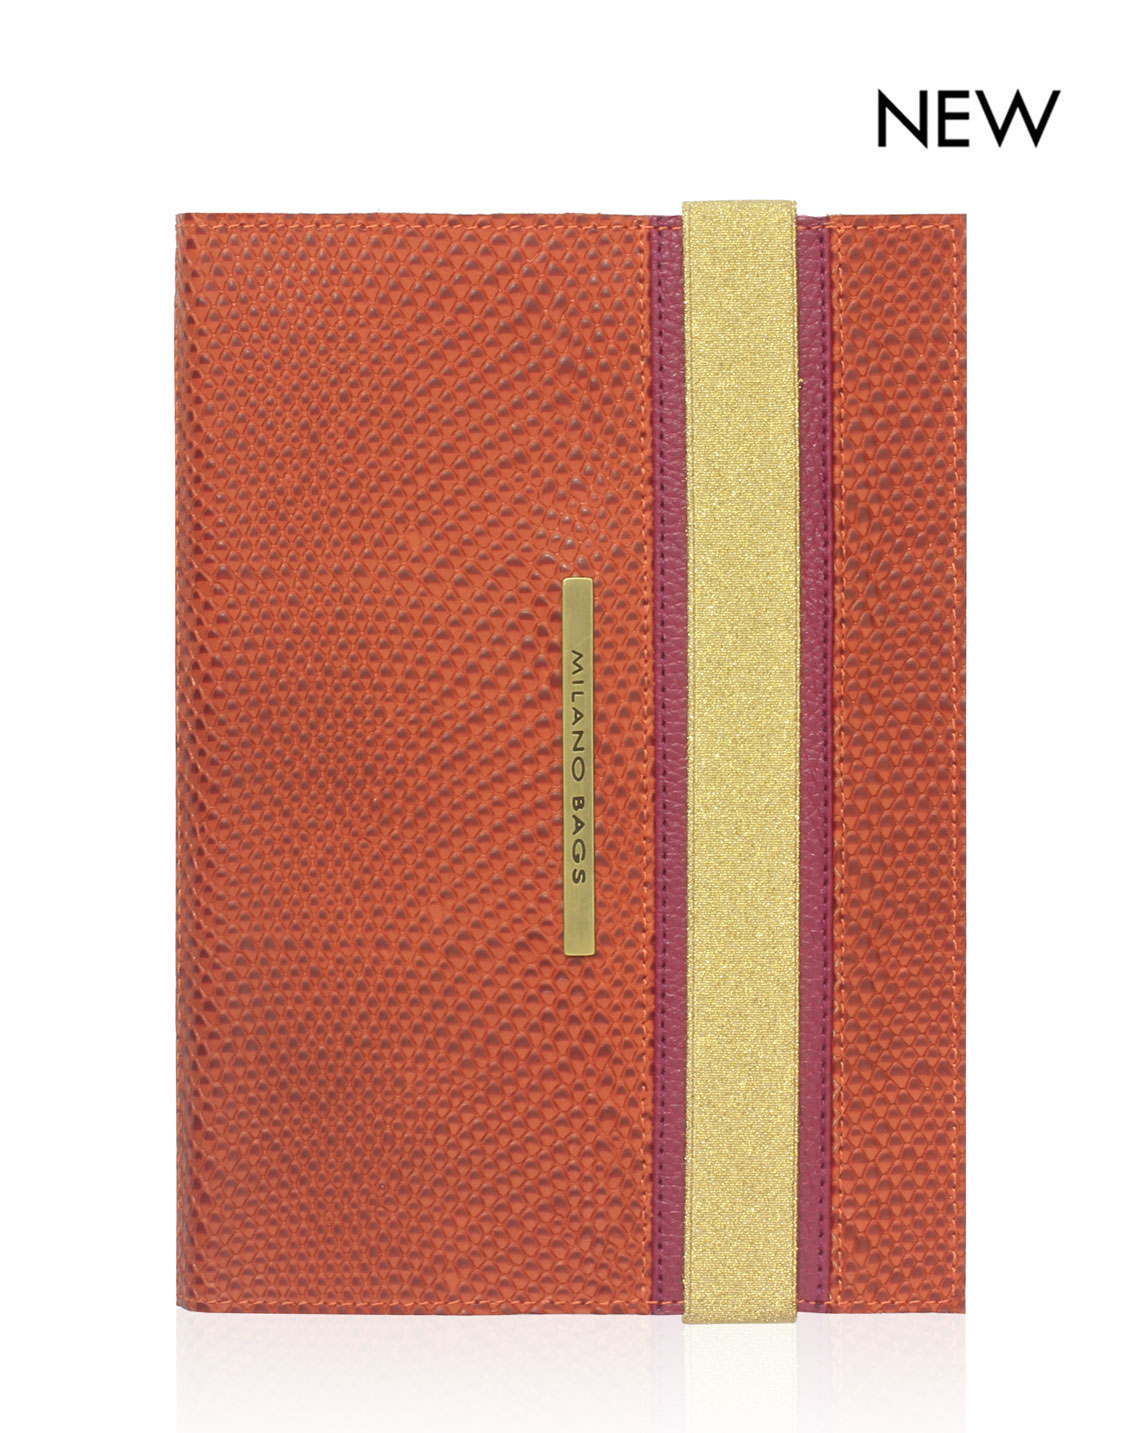 Agenda AG-0111 Color Naranja